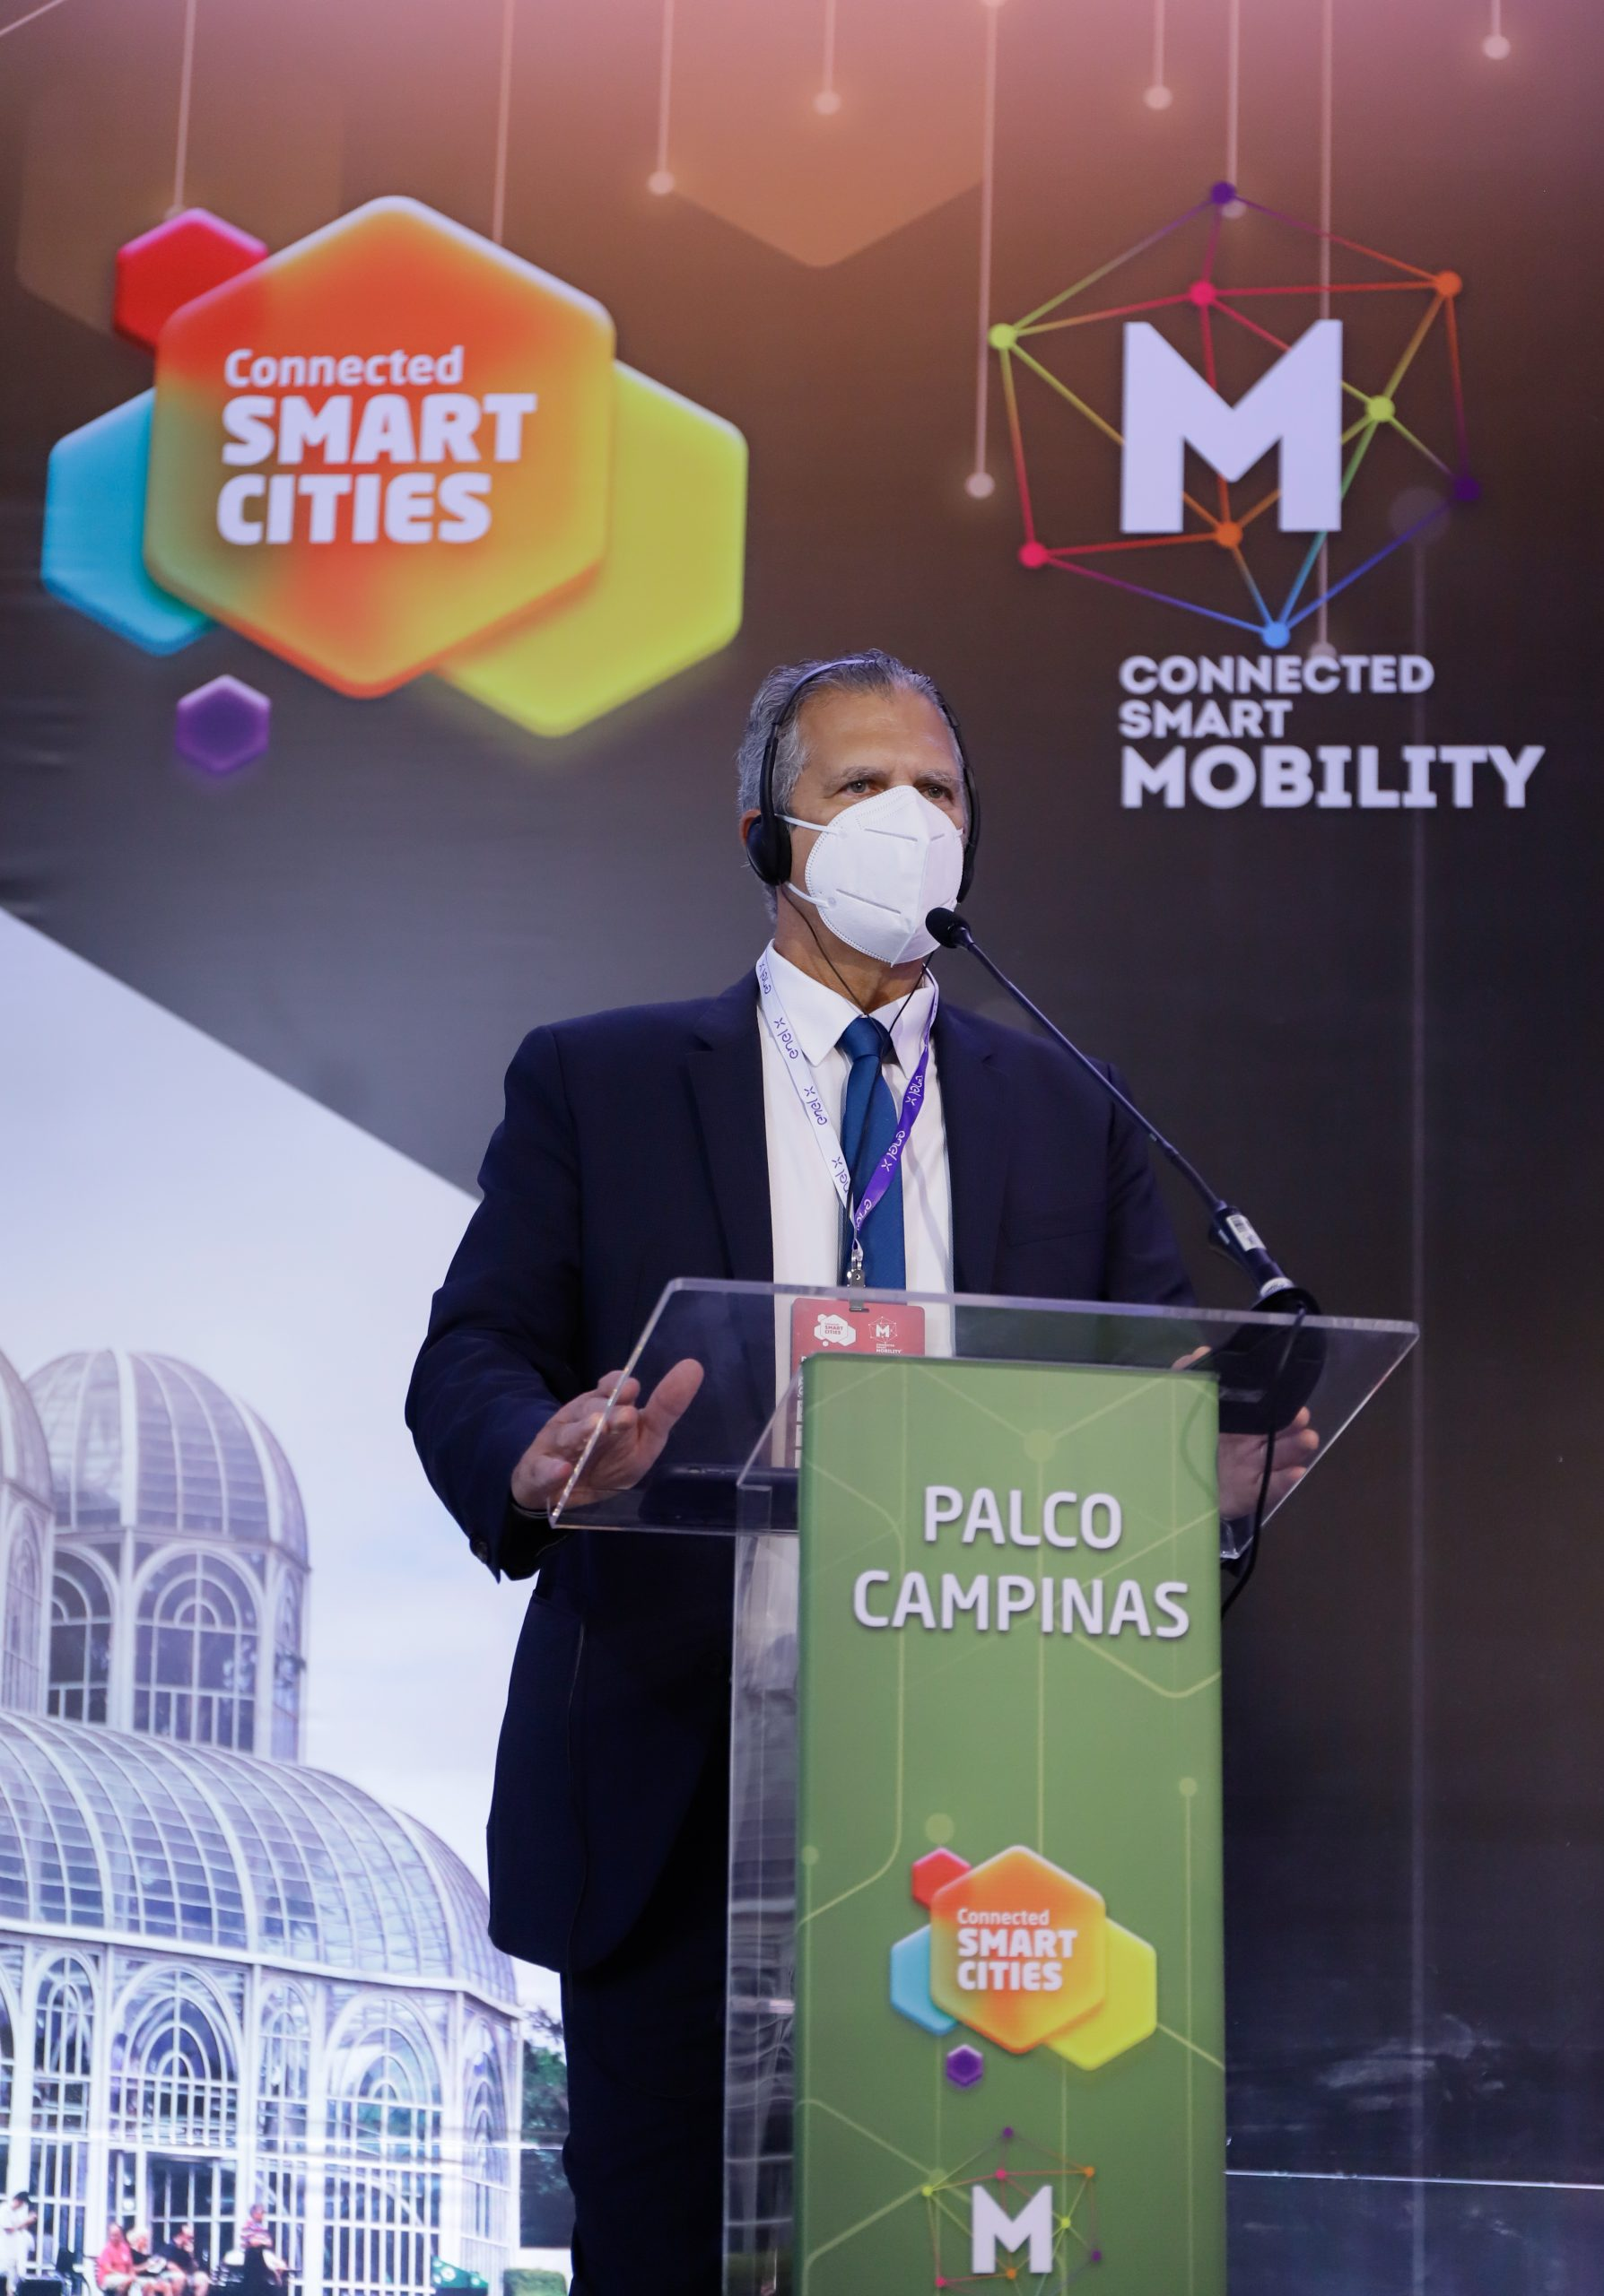 CONNECTED_SMART-CITIES-2 15